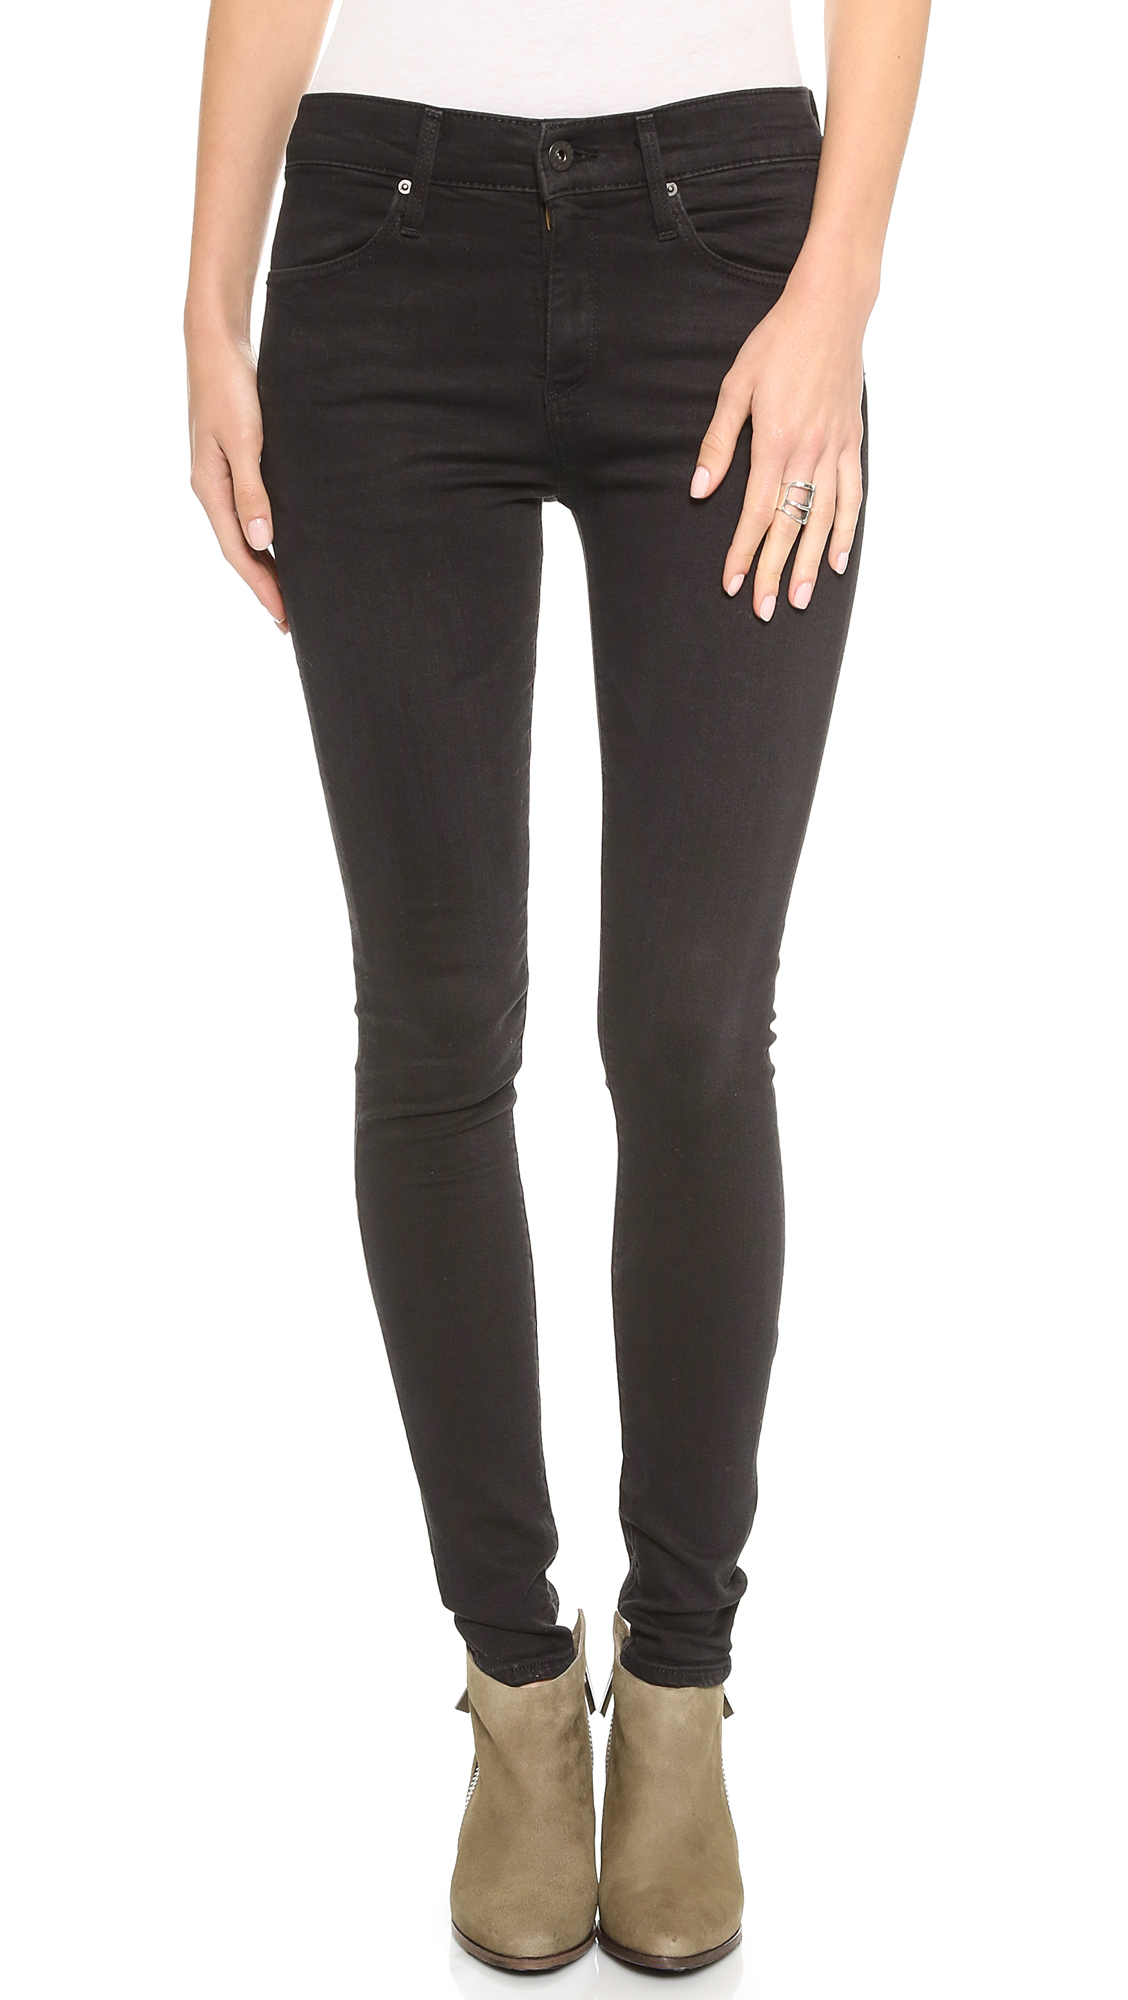 Ag adriano goldschmied the farrah high rise skinny jeans